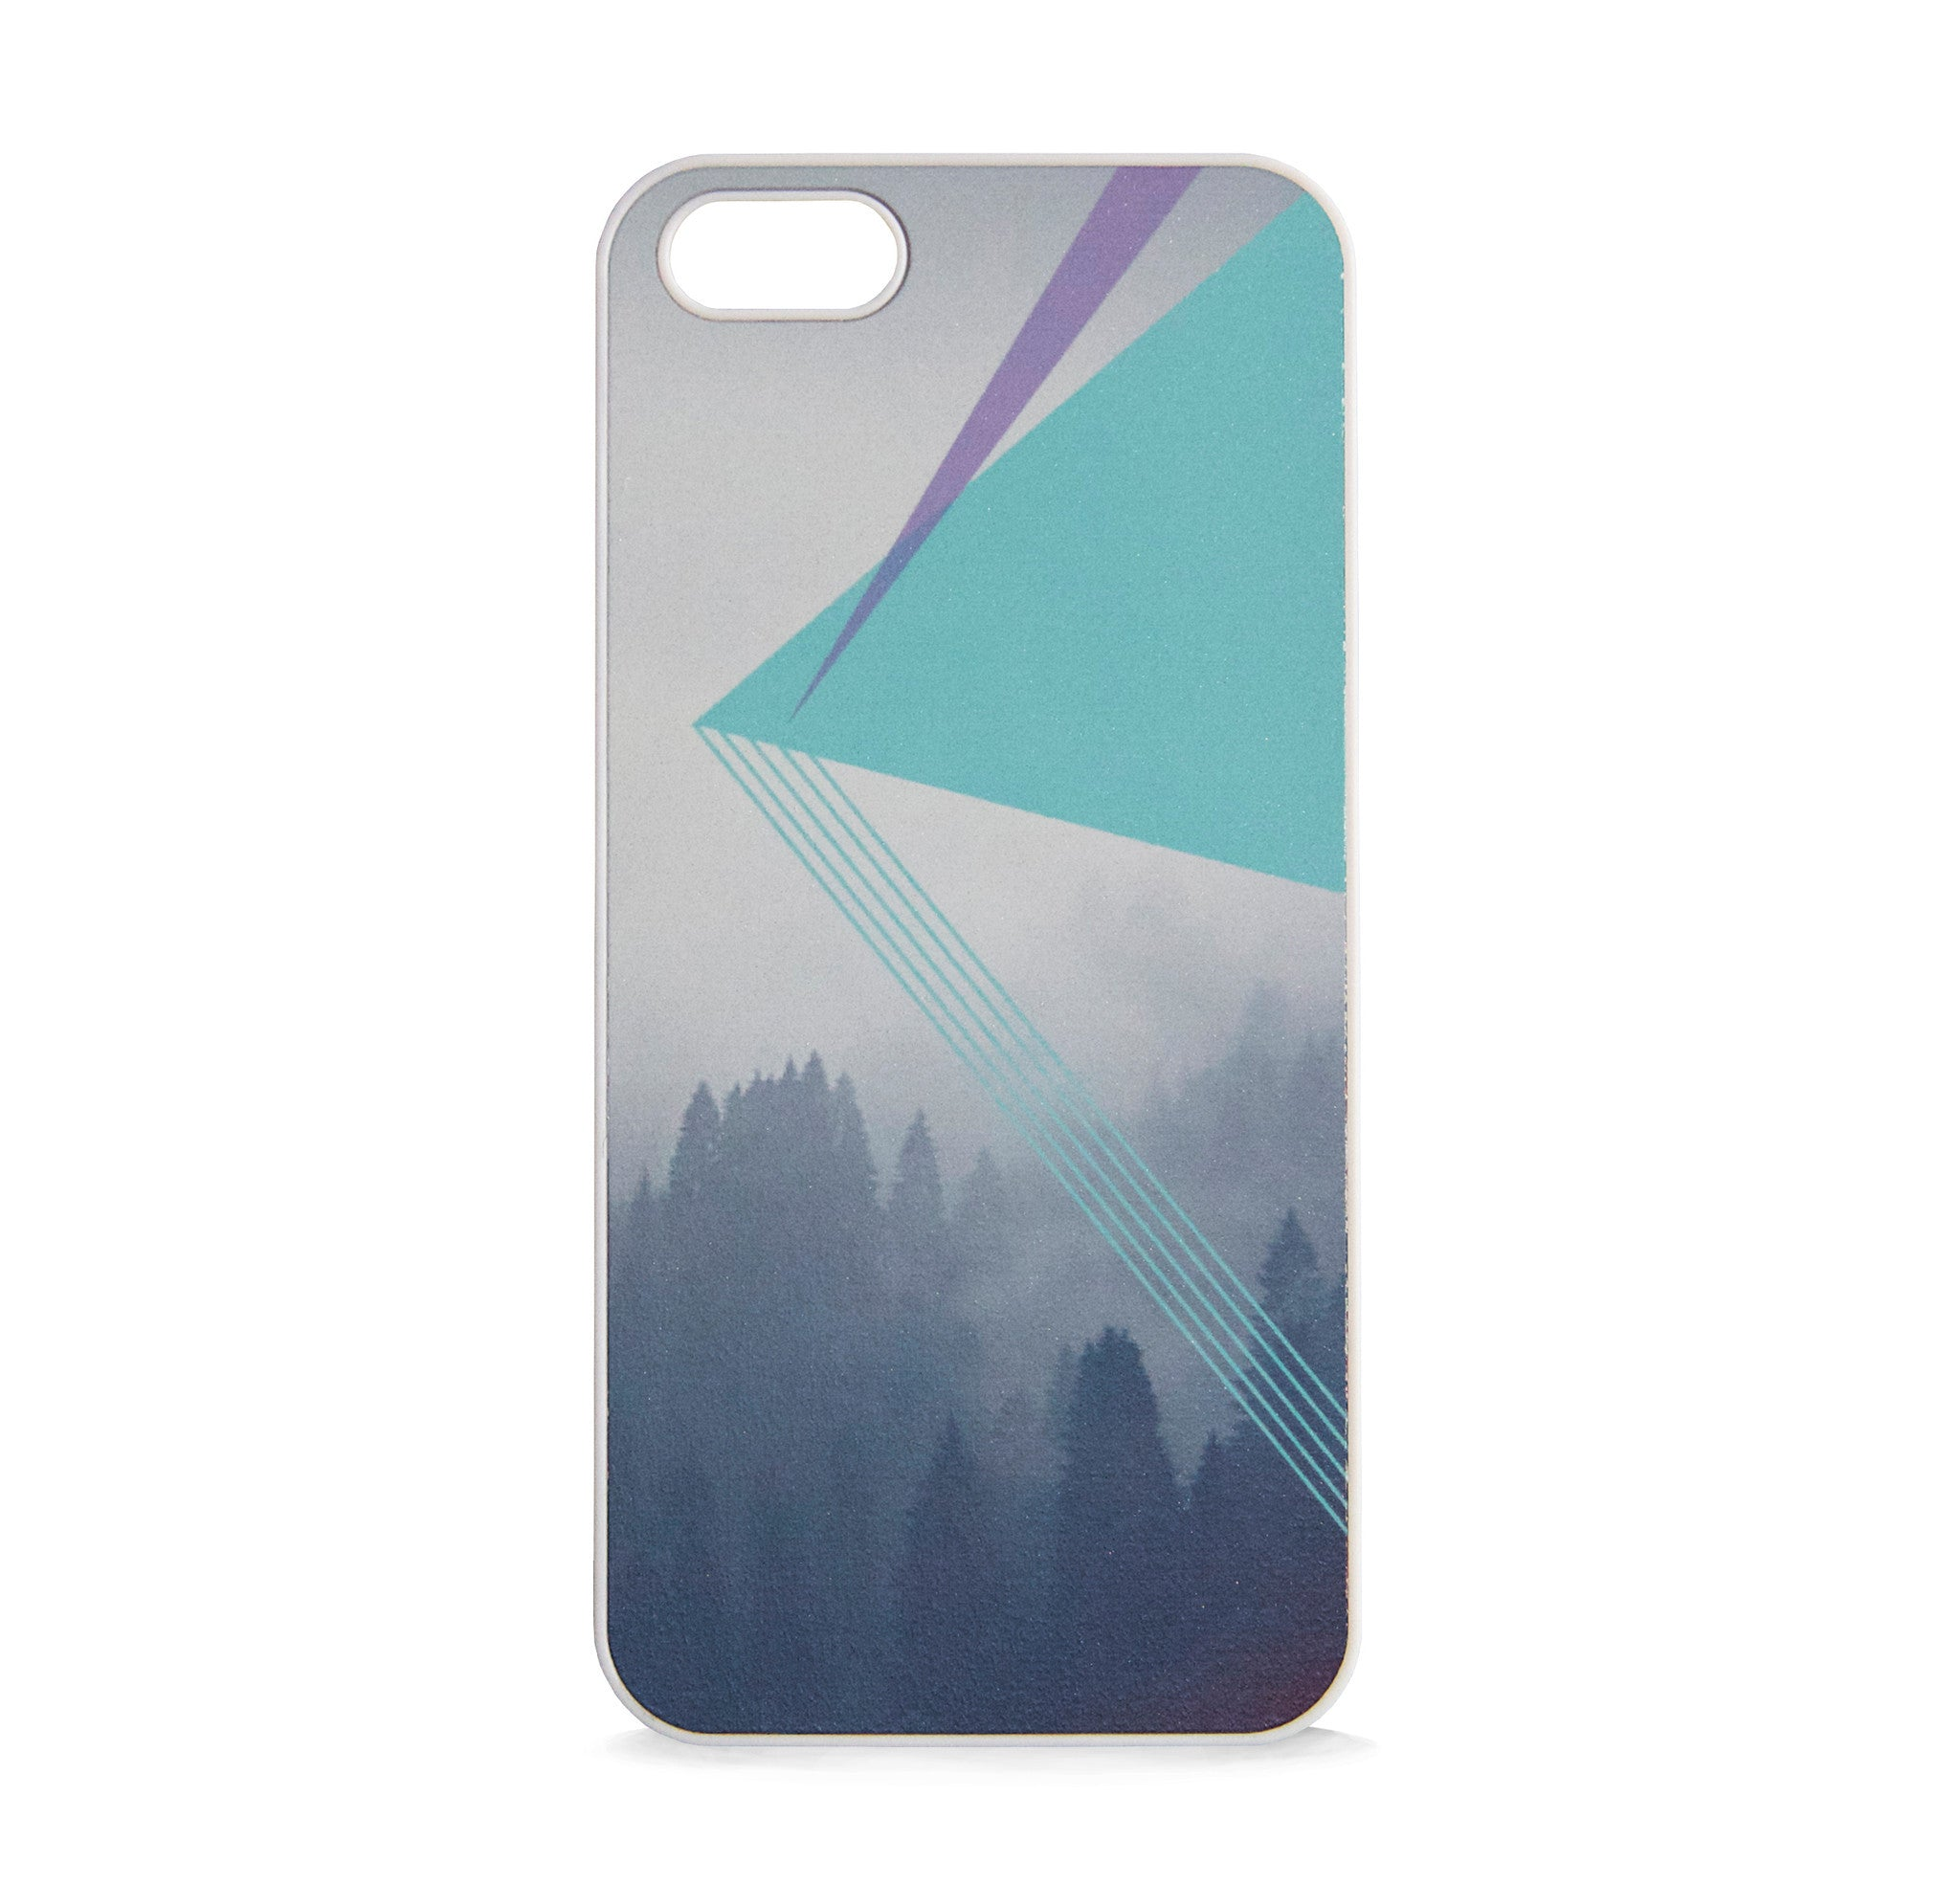 GEO NATURE FOG FOR IPHONE 5/5S, IPHONE SE